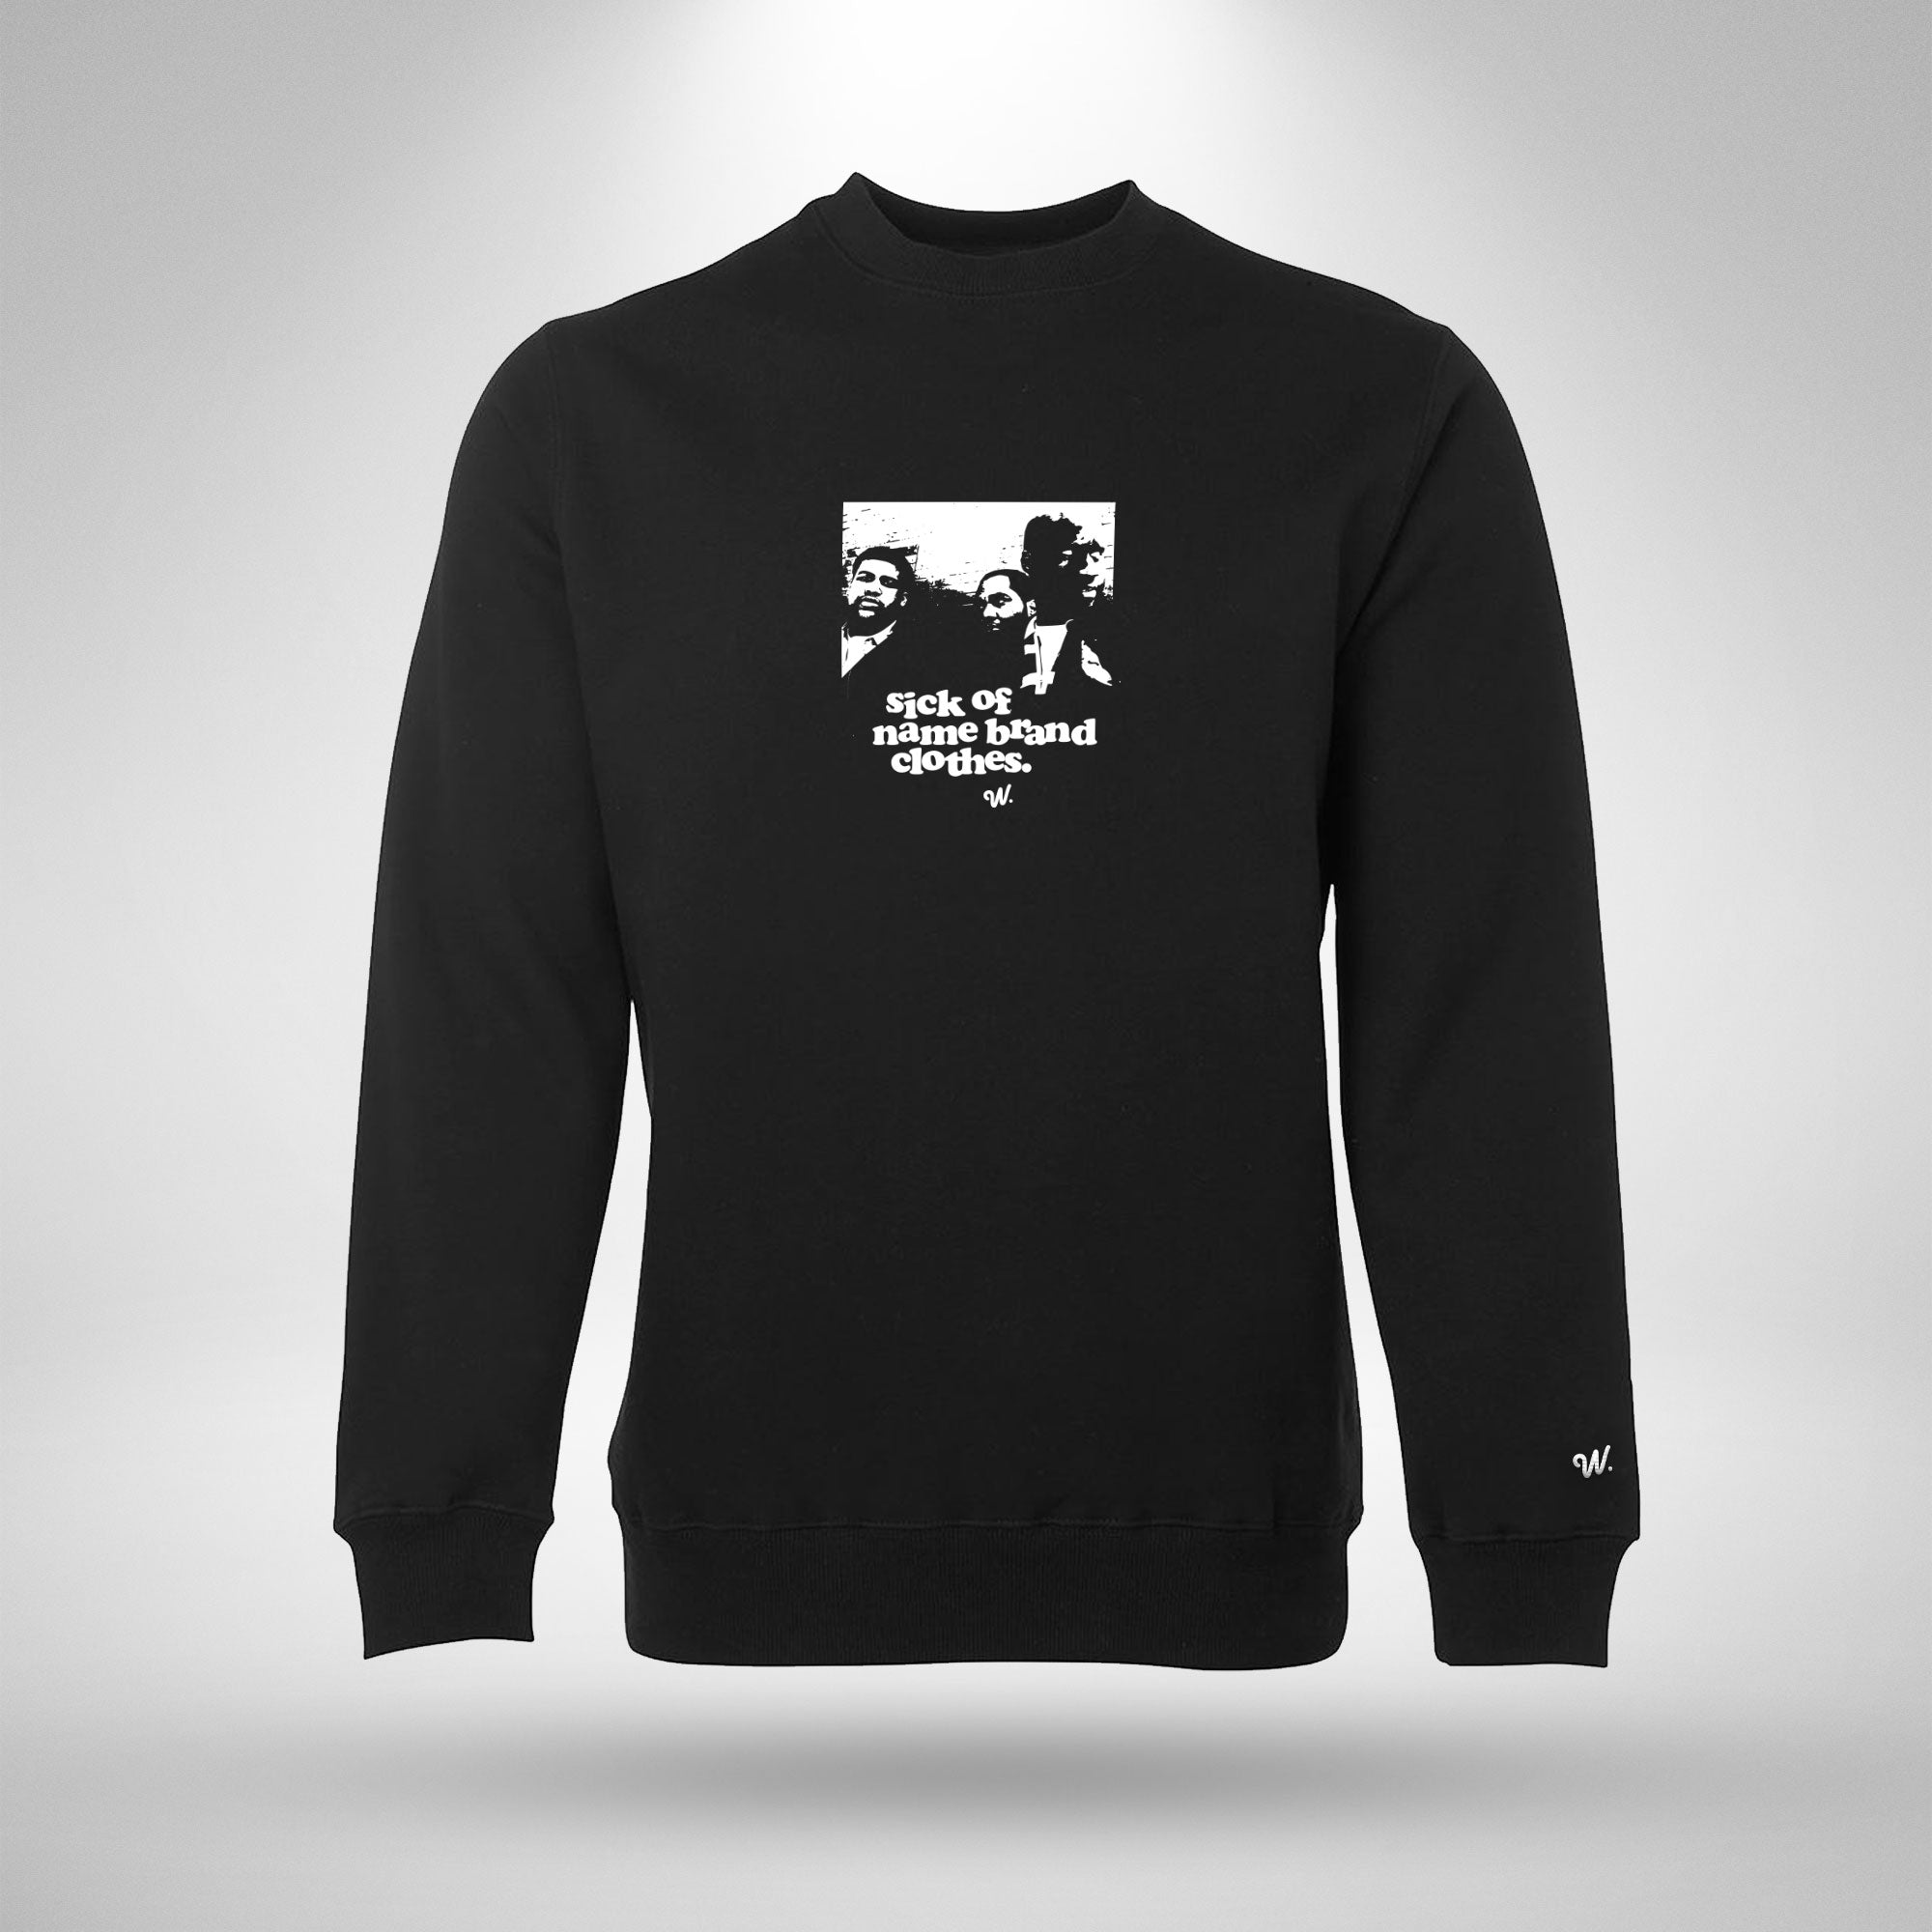 Clothing Crewneck Sweatshirt